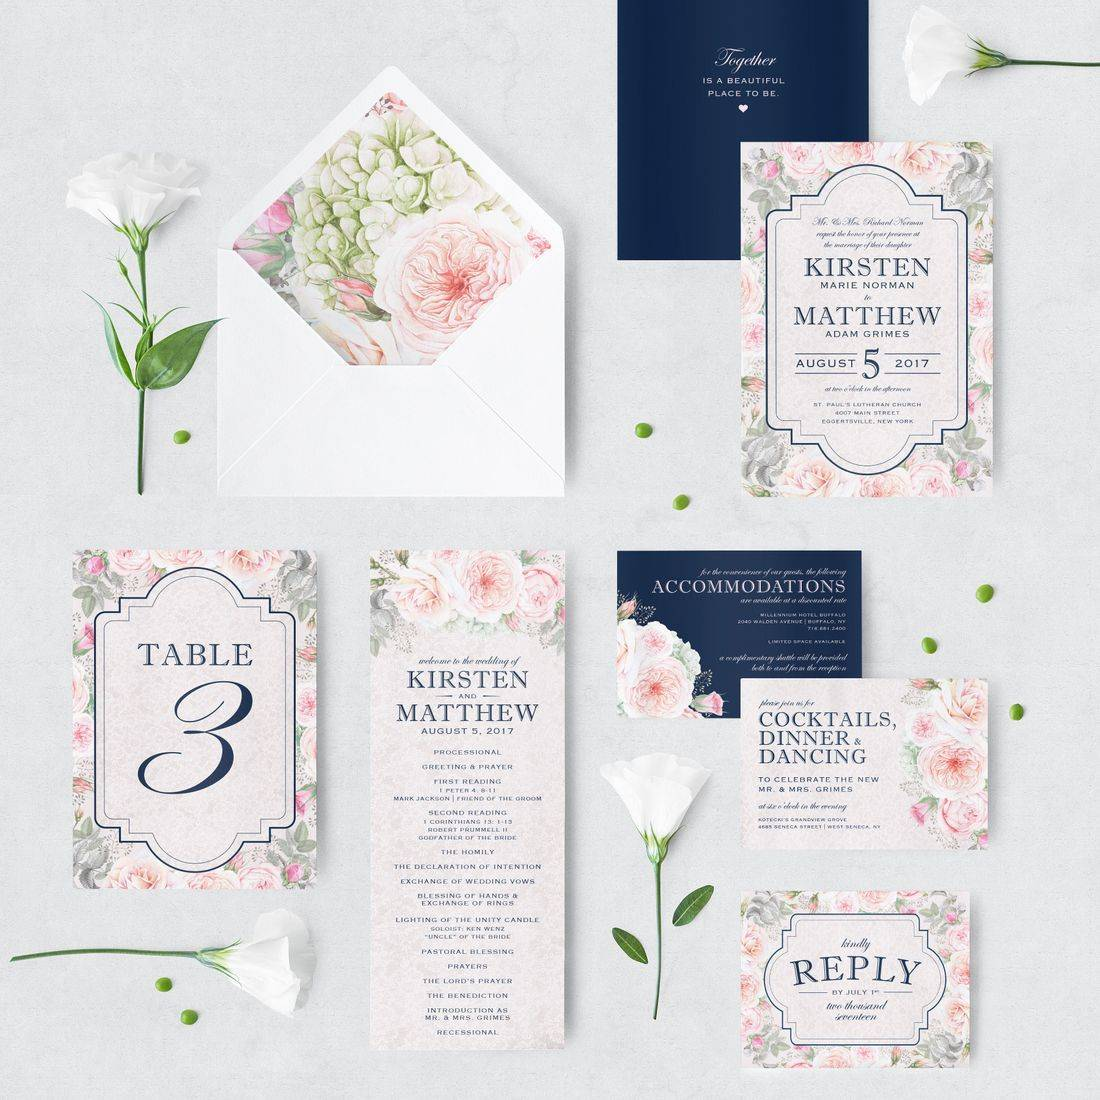 Blush and navy floral and lace wedding invitation suite